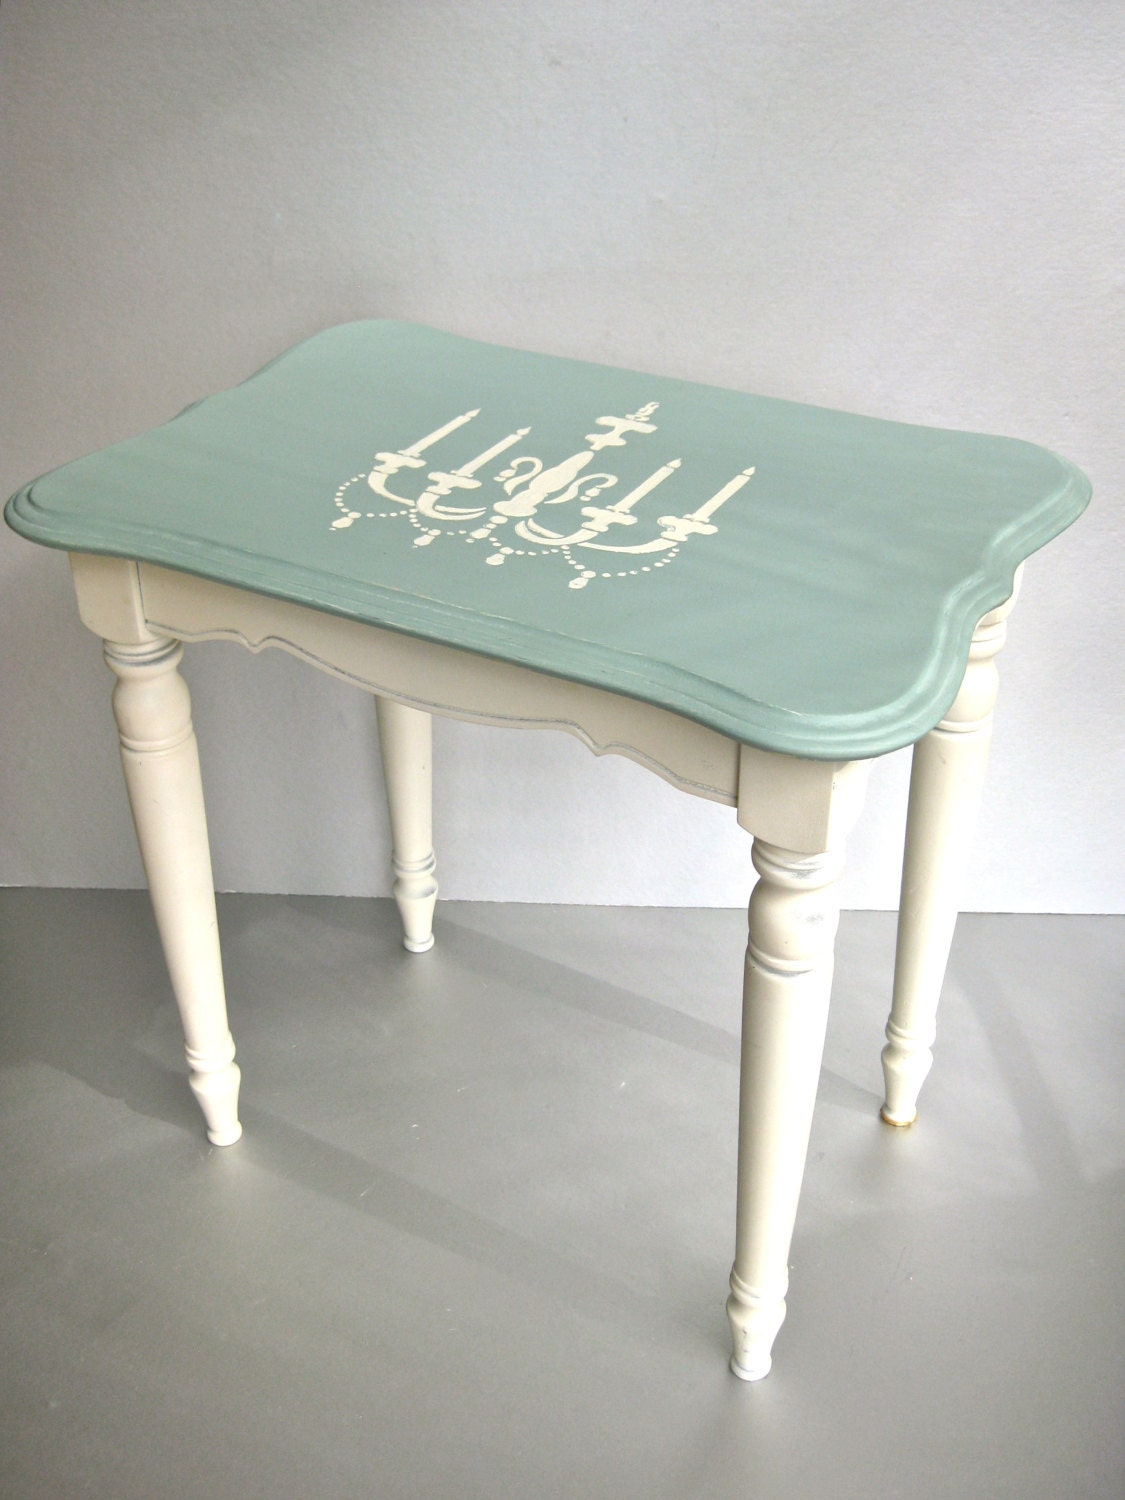 Shabby Side Table Vintage Table Wood Table Aqua By Swede13